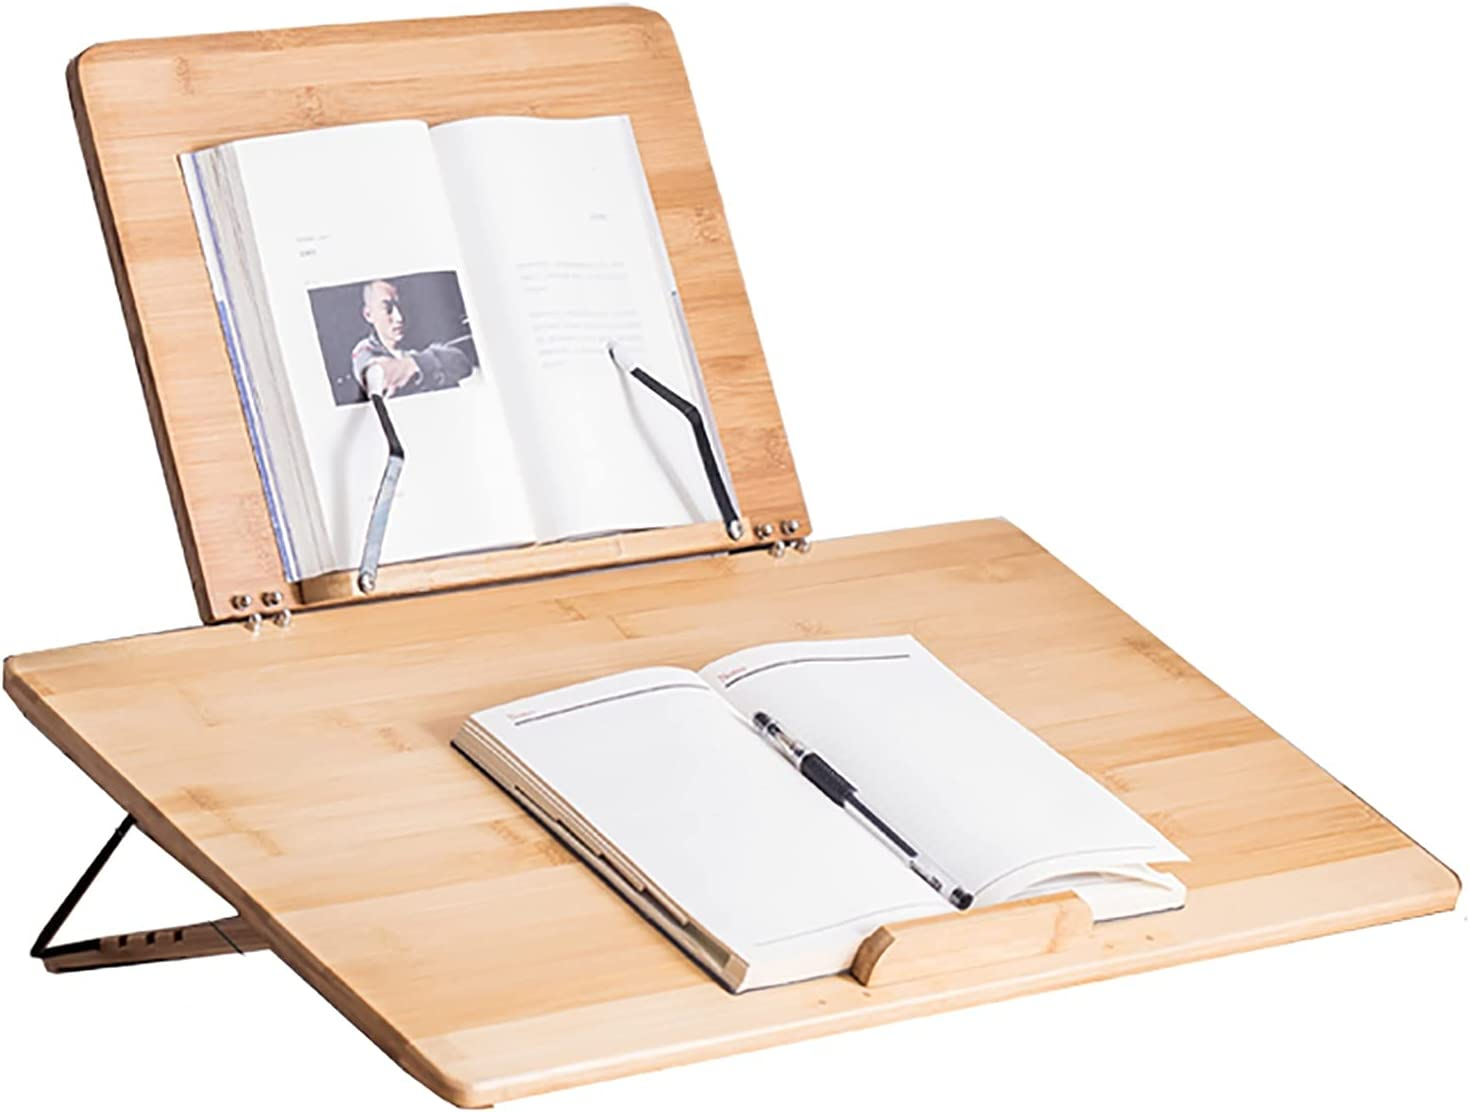 Book Stand Bamboo Foldable 67% OFF of fixed price Frame Ho Stand,Reading Rest Luxury goods